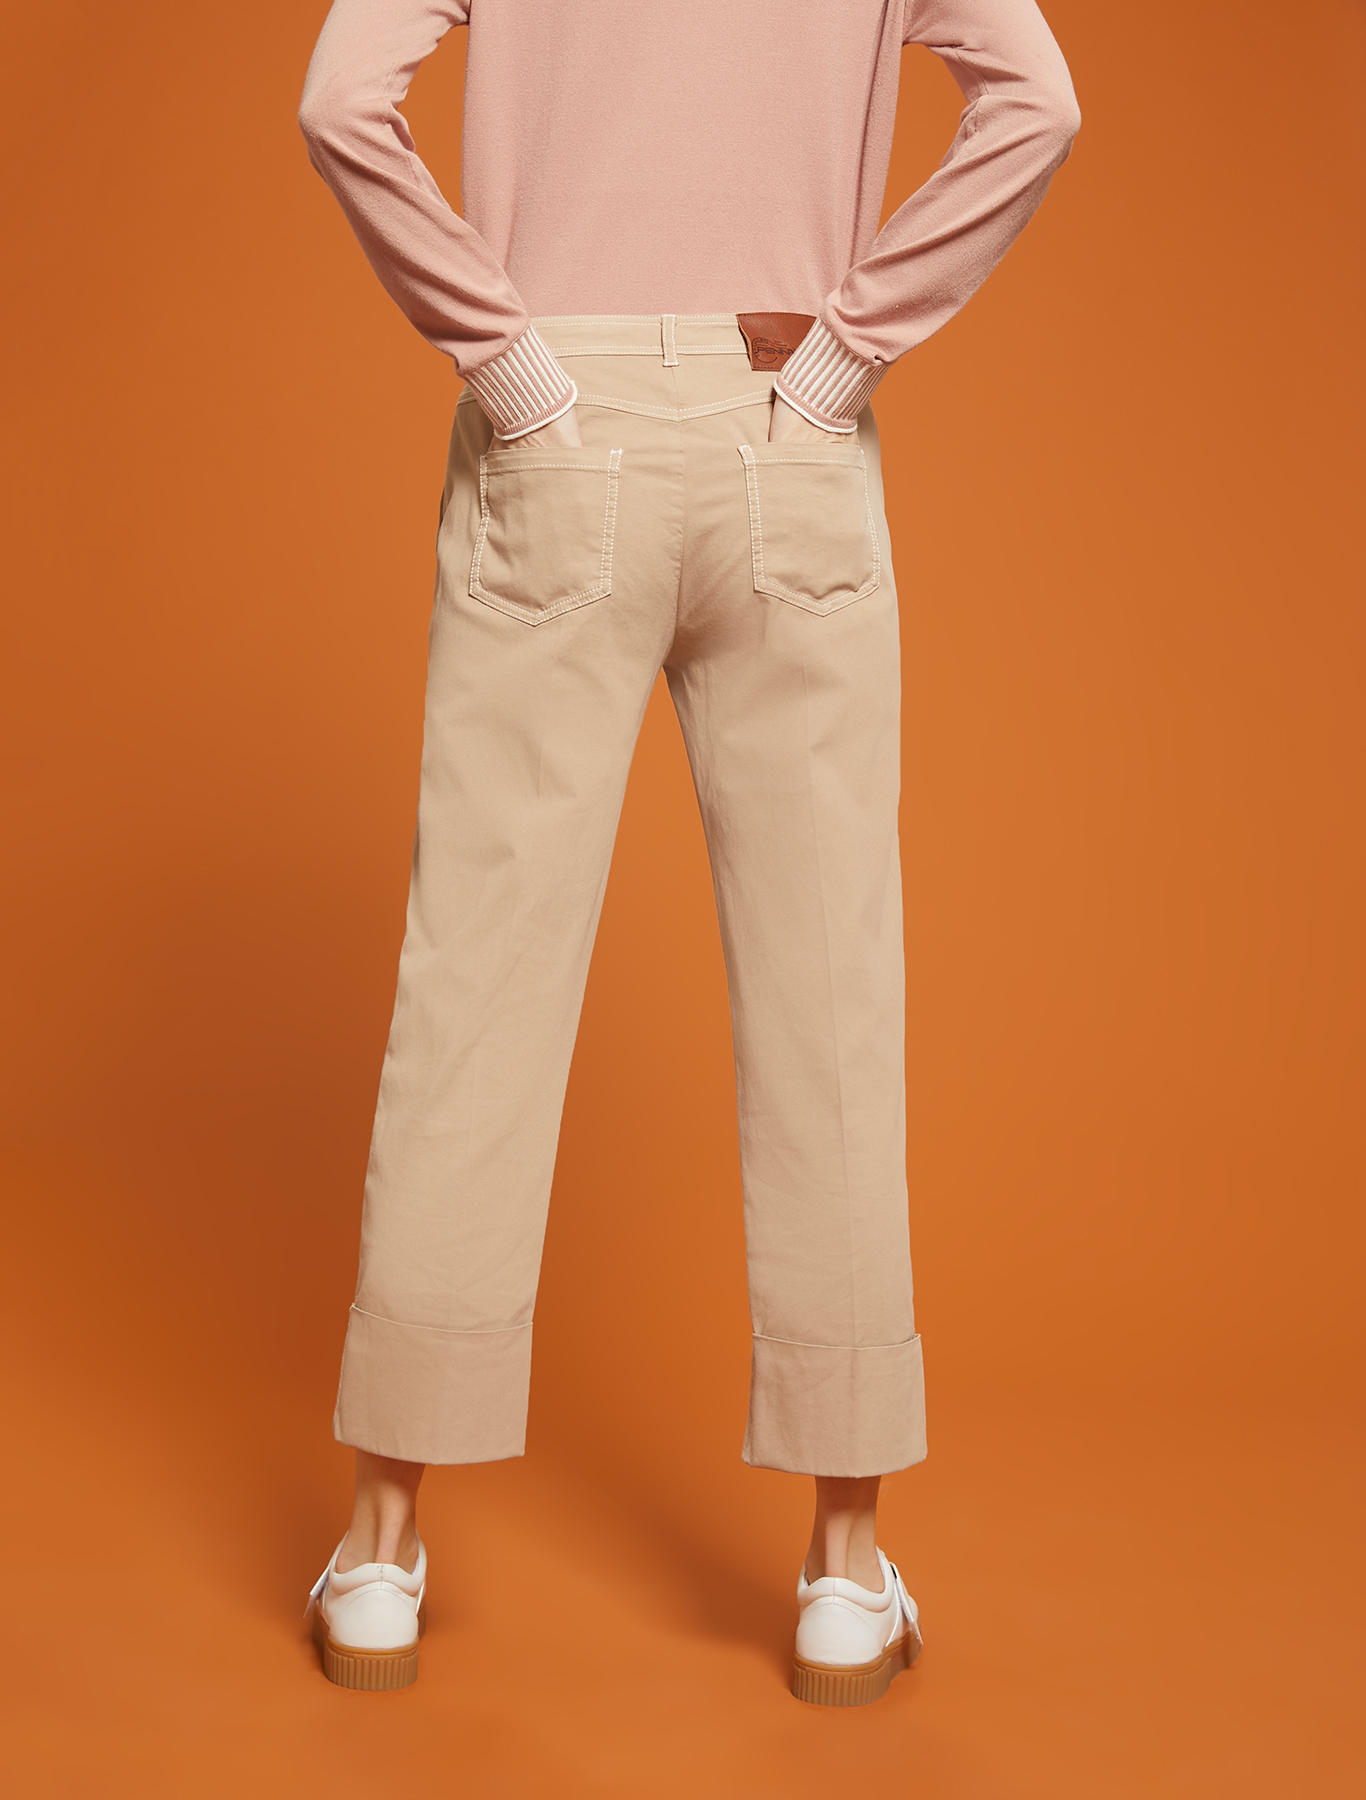 Piqué cotton trousers - beige - pennyblack